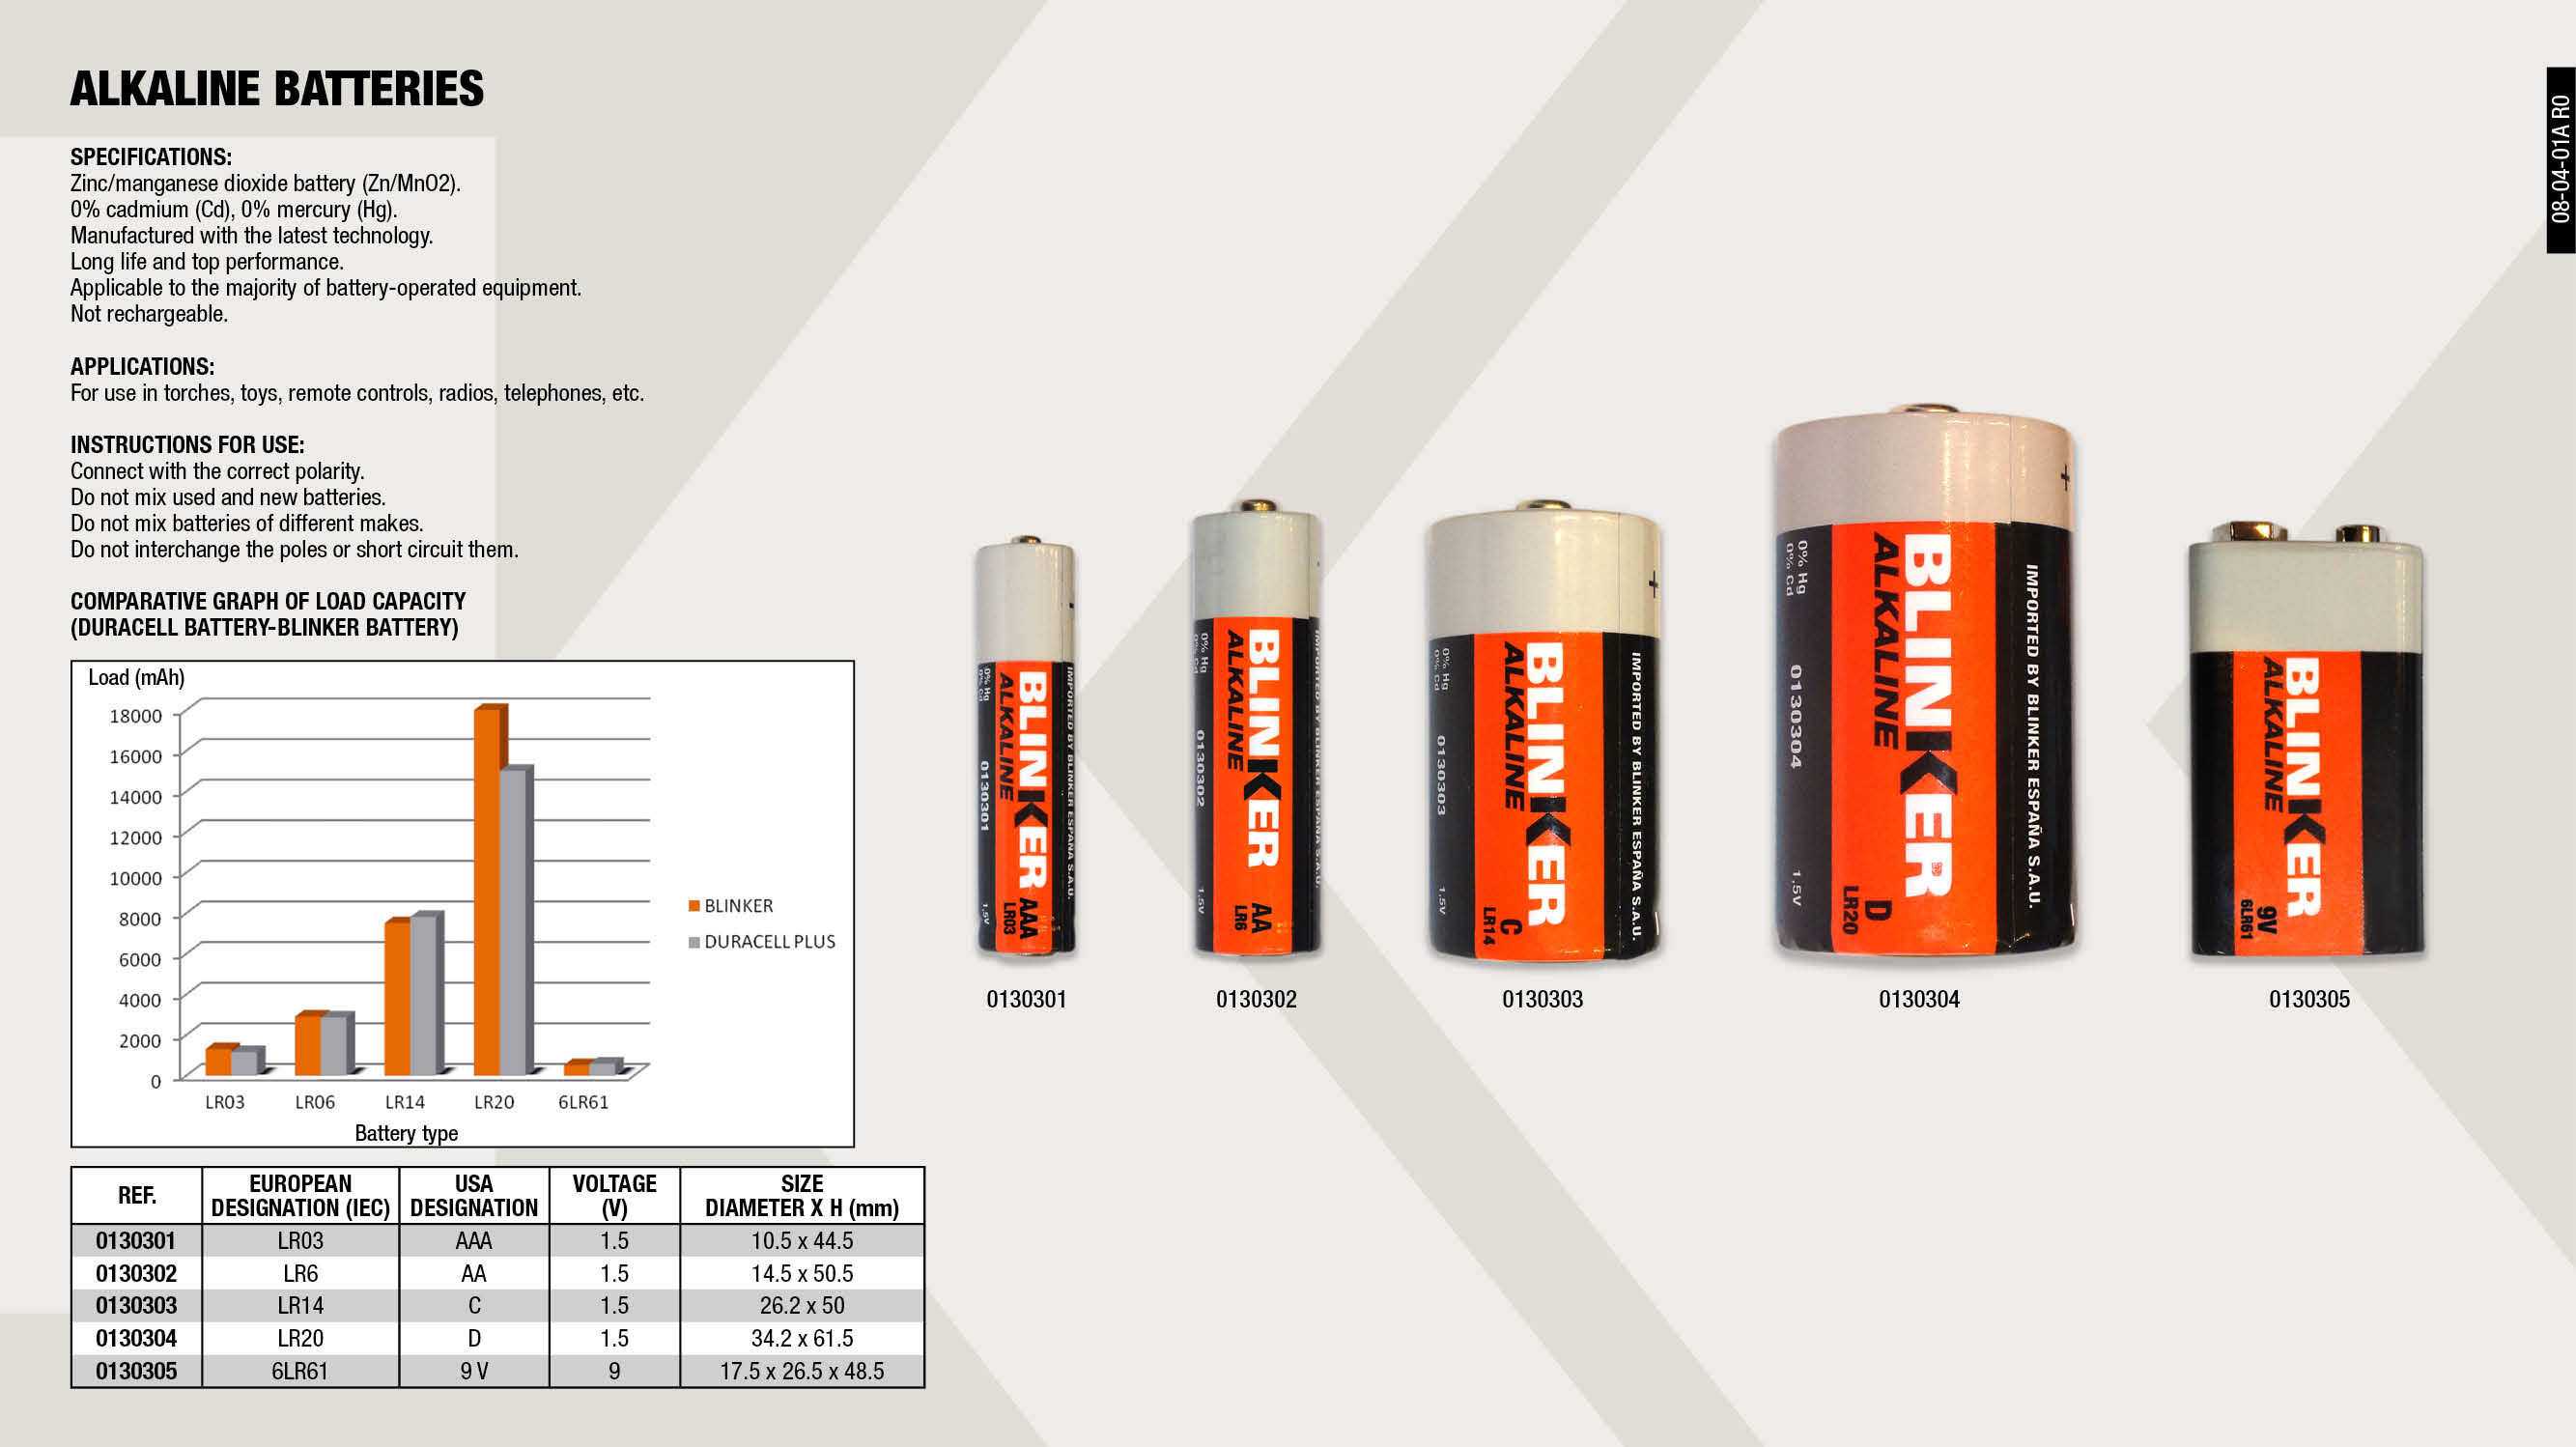 ALKALINE BATTERY 9V                                         ,  									ALKALINE BATTERY AAA                                        ,  									ALKALINE BATTERY AA                                         ,  									ALKALINE BATTERY C                                          ,  									ALKALINE BATTERY D                                          ,